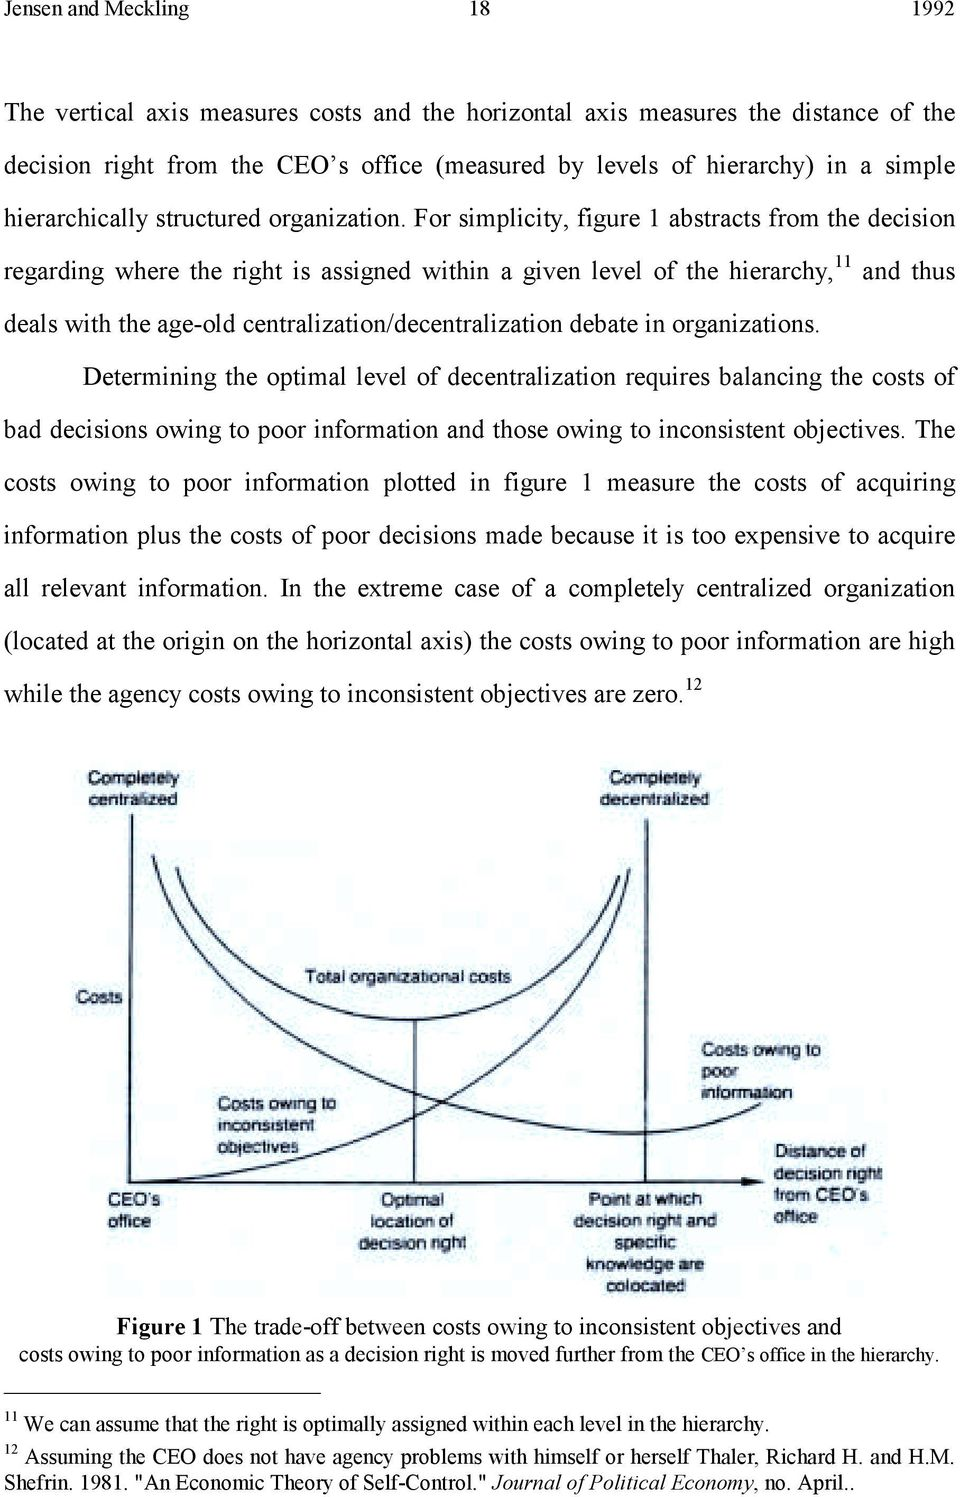 For simplicity, figure 1 abstracts from the decision regarding where the right is assigned within a given level of the hierarchy, 11 and thus deals with the age-old centralization/decentralization